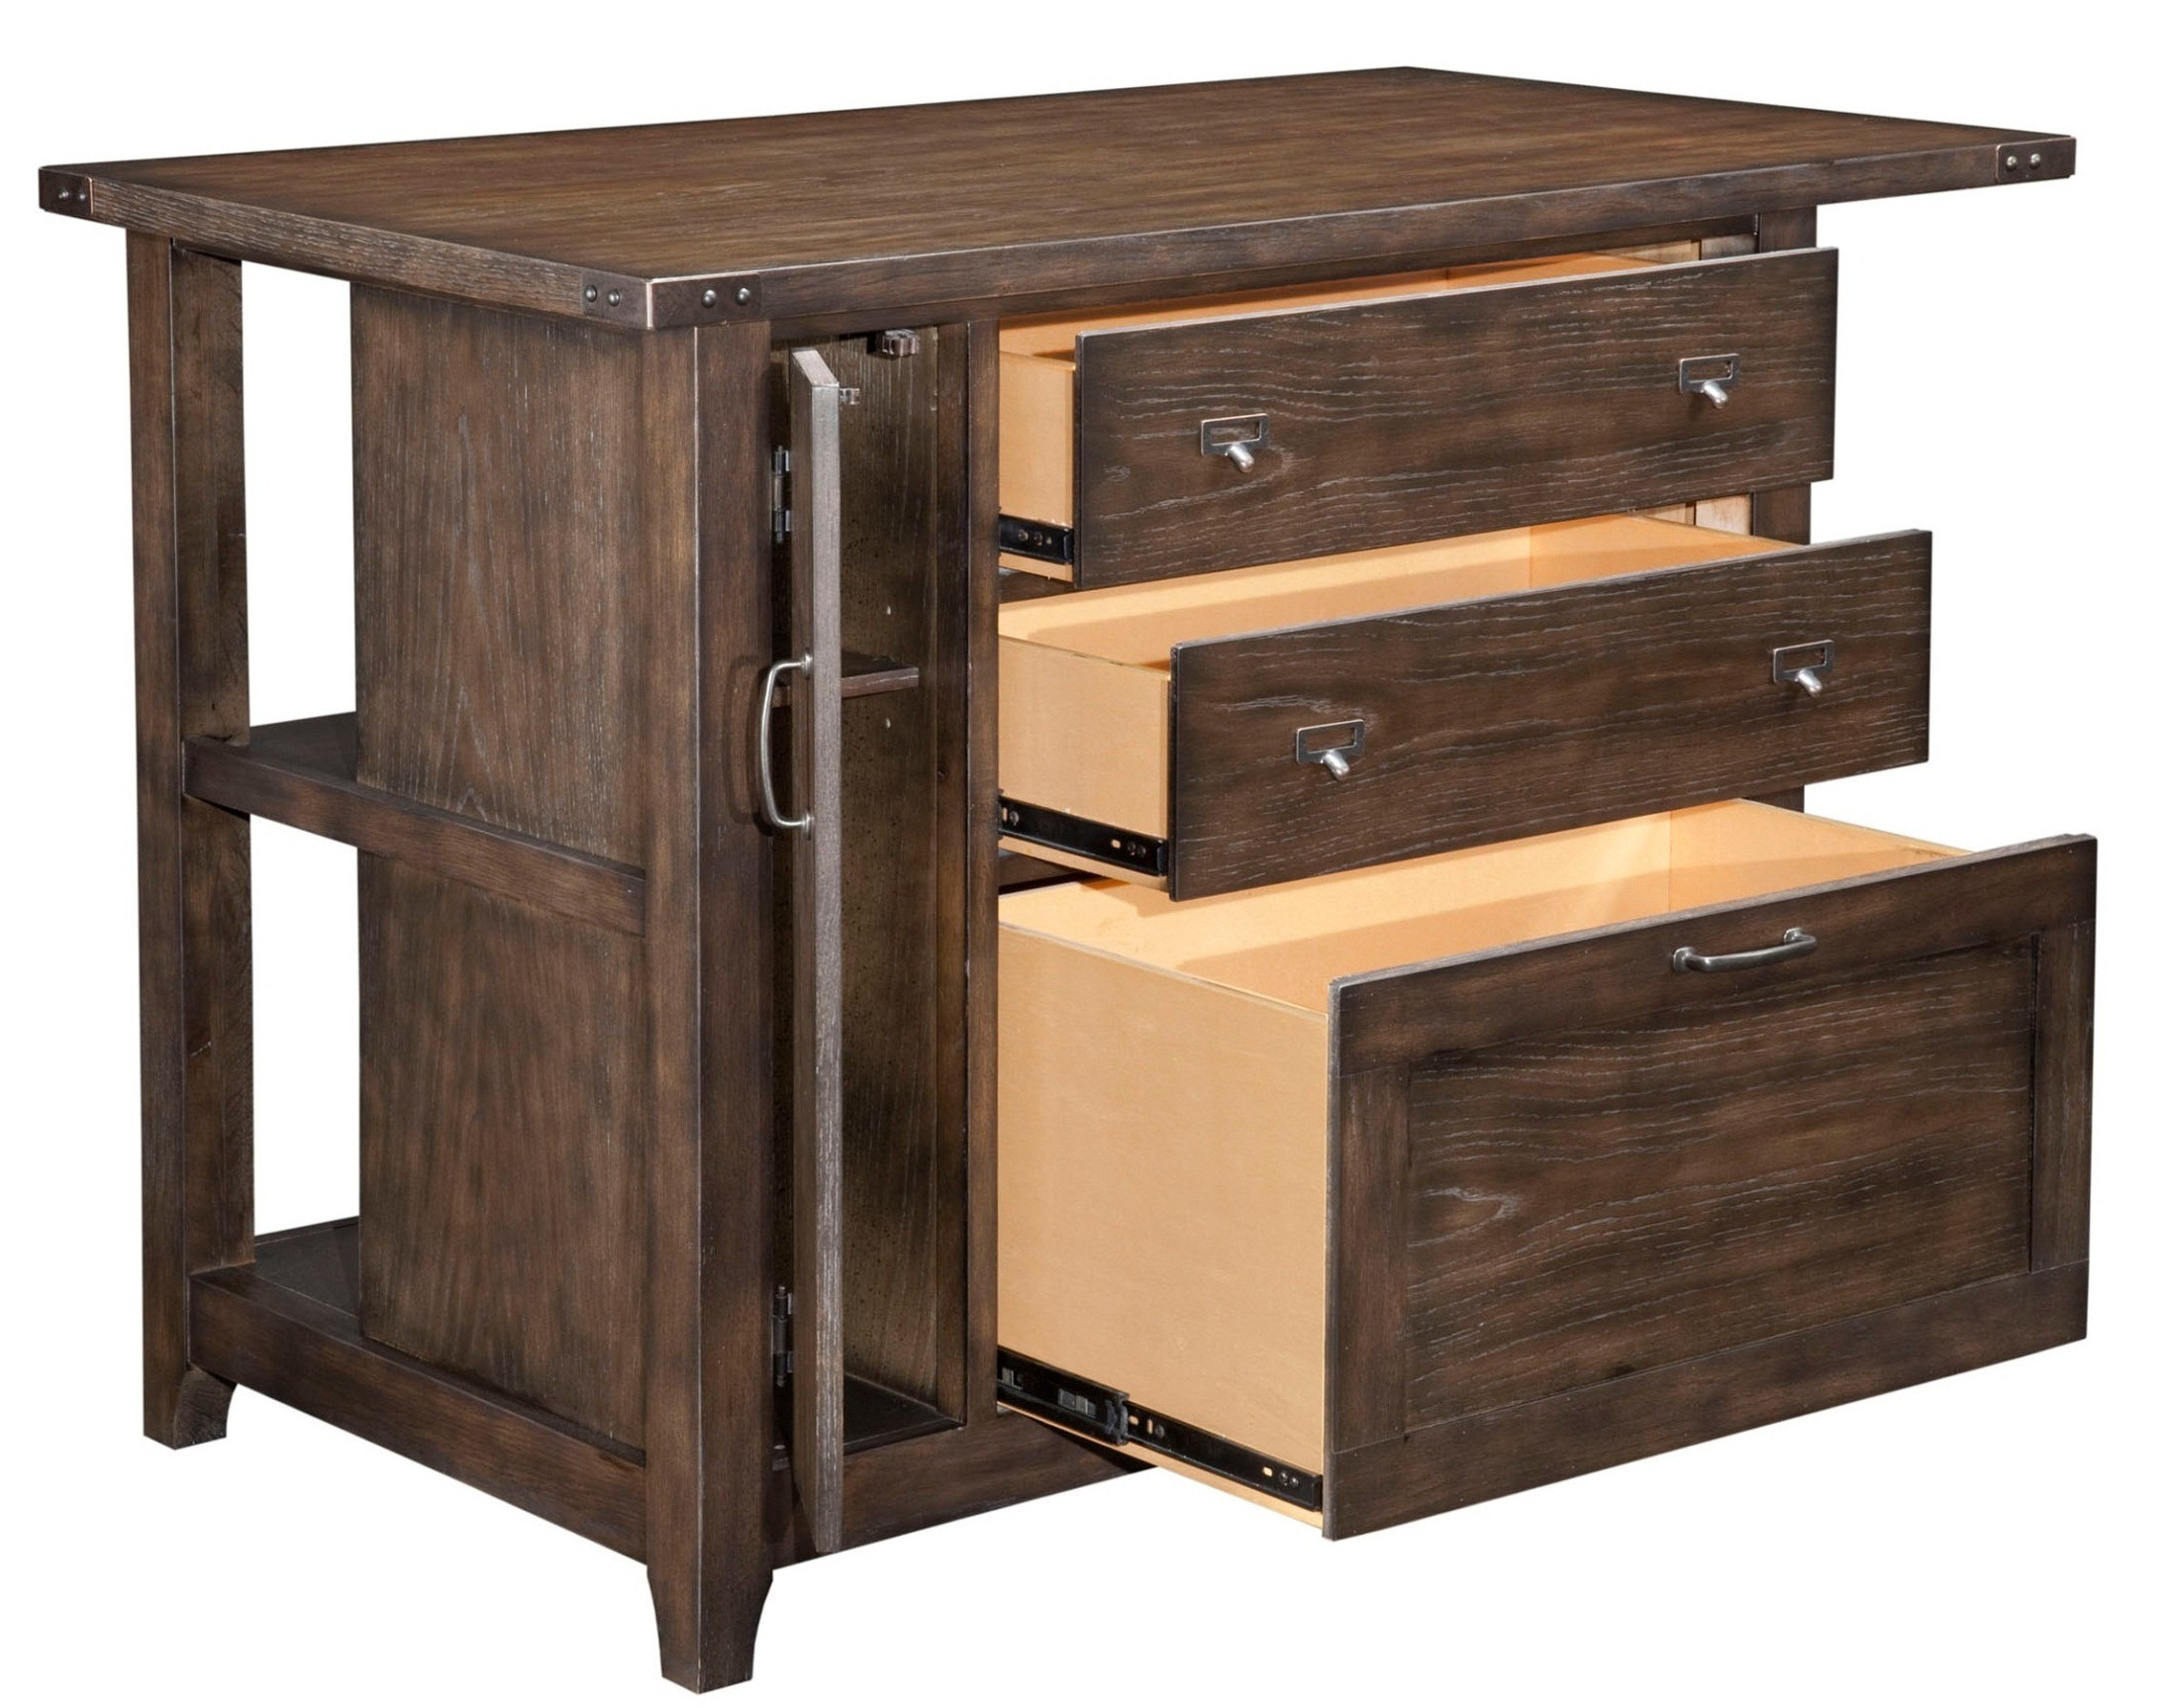 broyhill kitchen island garten moy broyhill attic retreat kitchen island 4990 1841